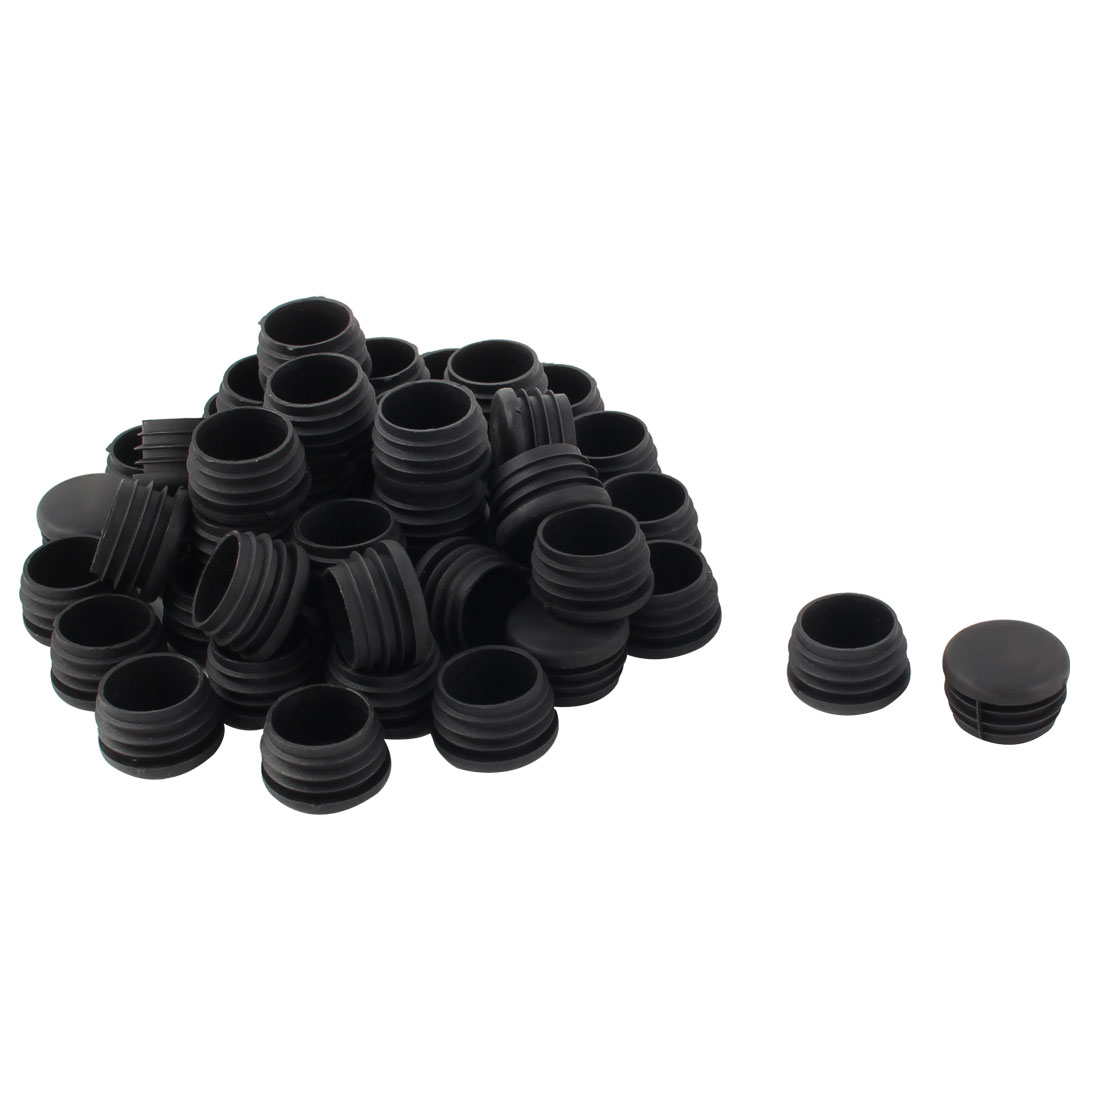 Plastic Round Tube Insert Blanking End Protectors Caps Black 32mm 50 PCS